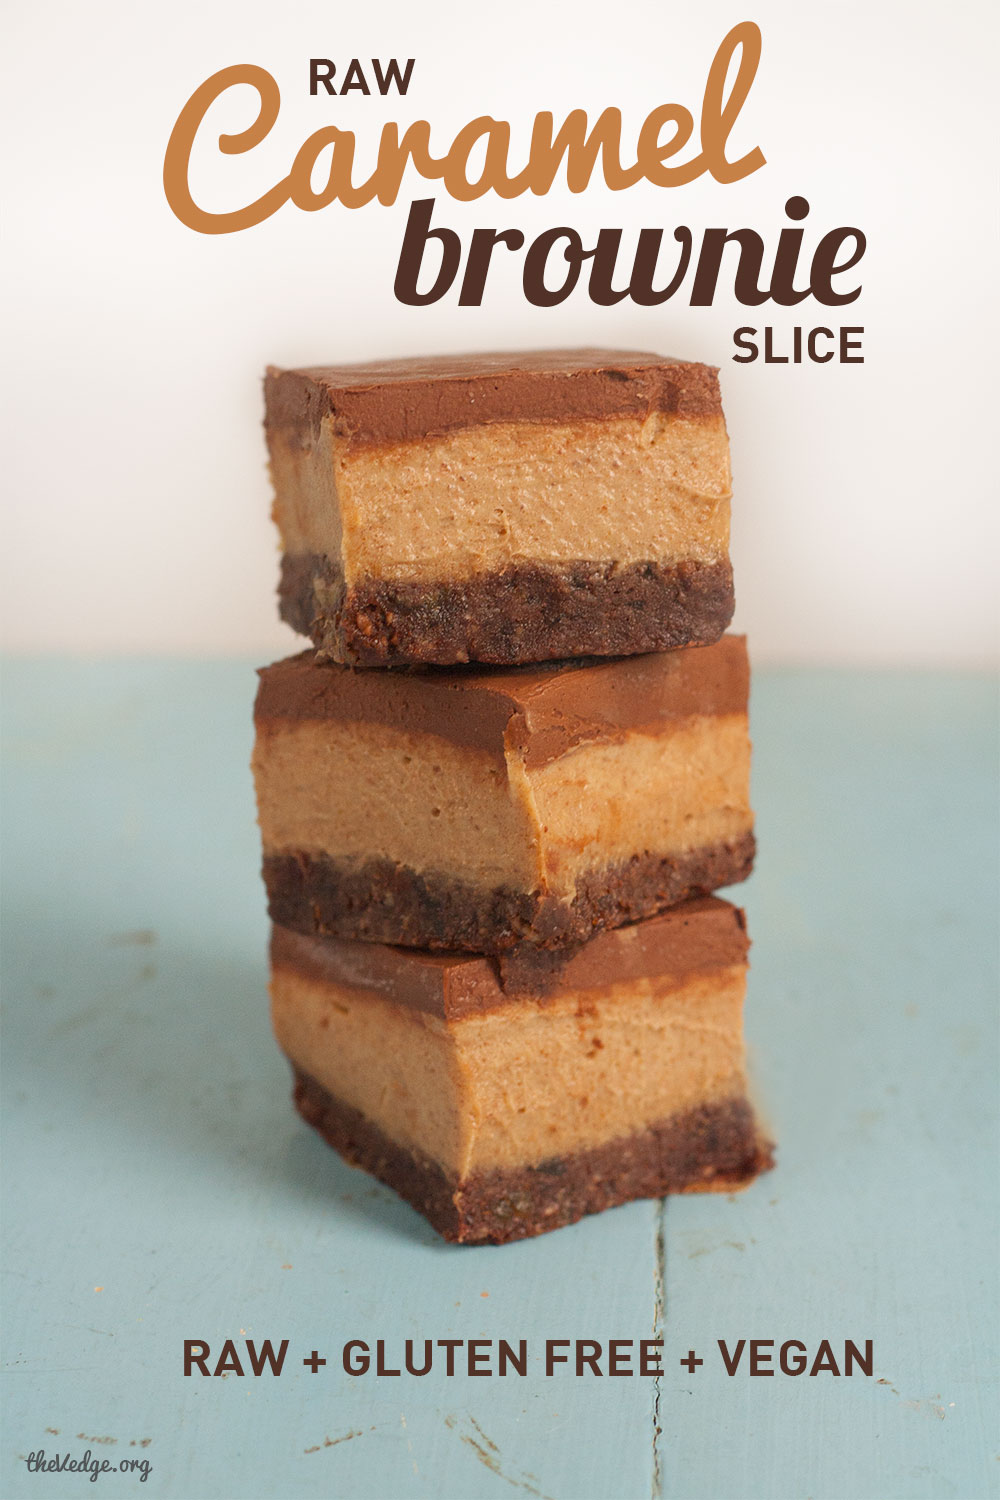 Raw Caramel Brownie Slice